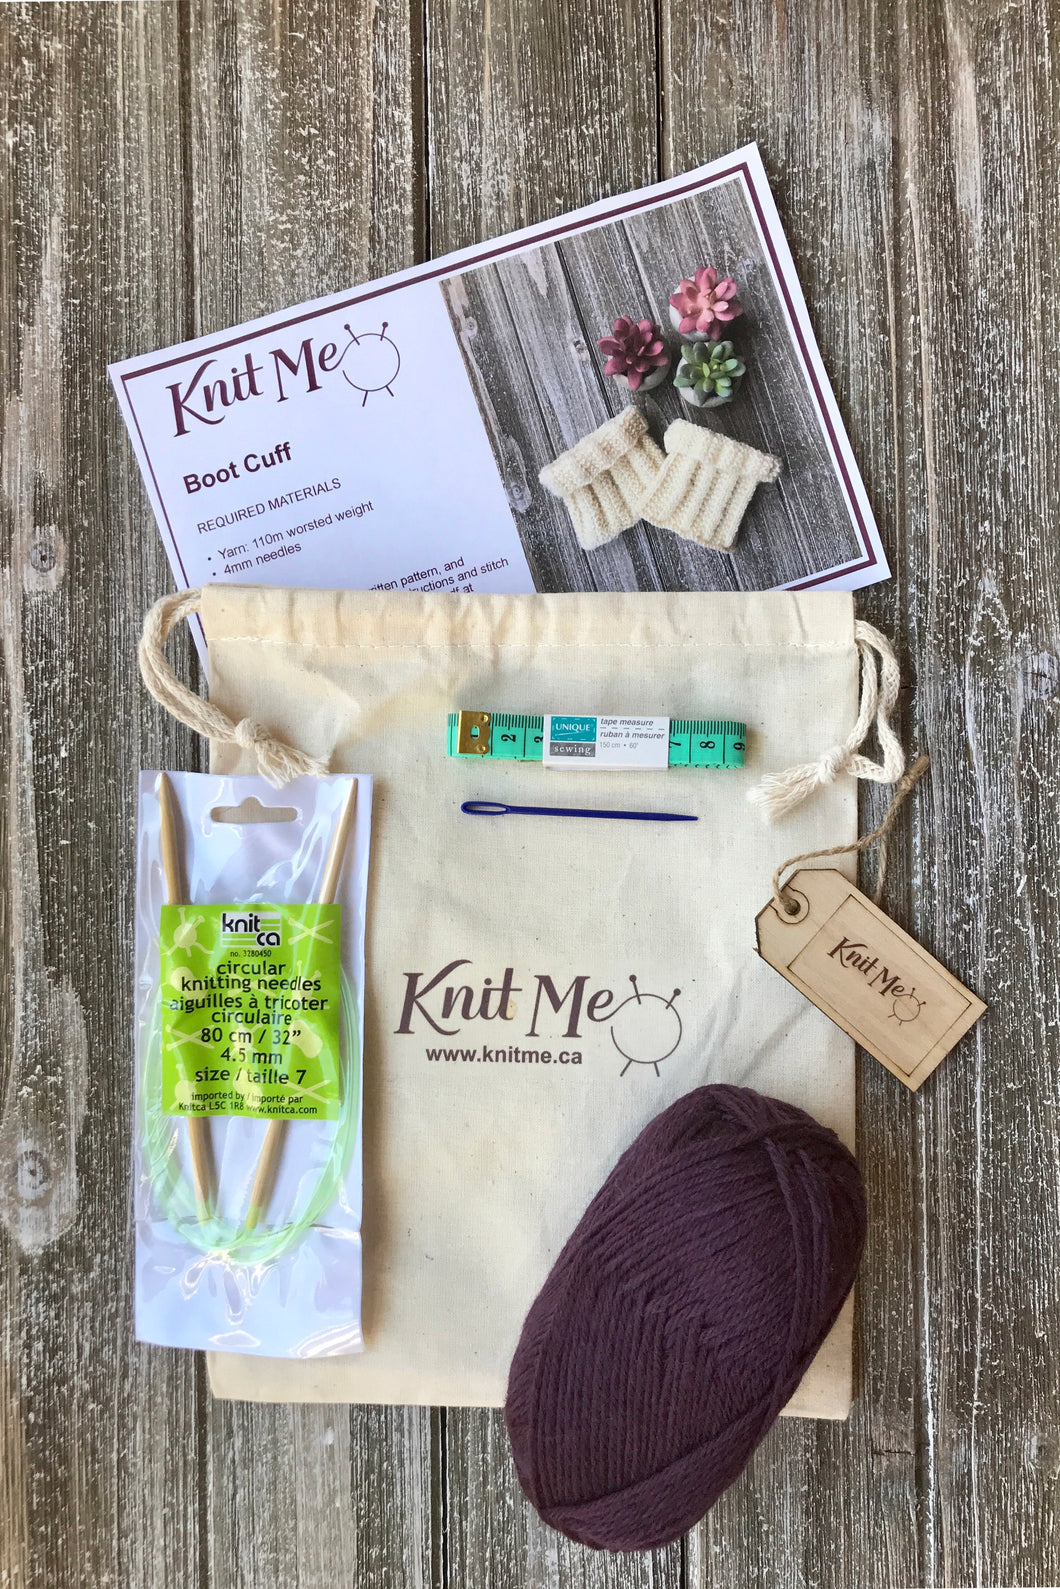 Accessory Set Contents:Egglplant worsted weight wool, Pattern, Knitting Needles, Wool Needle, Work In Progress Bag